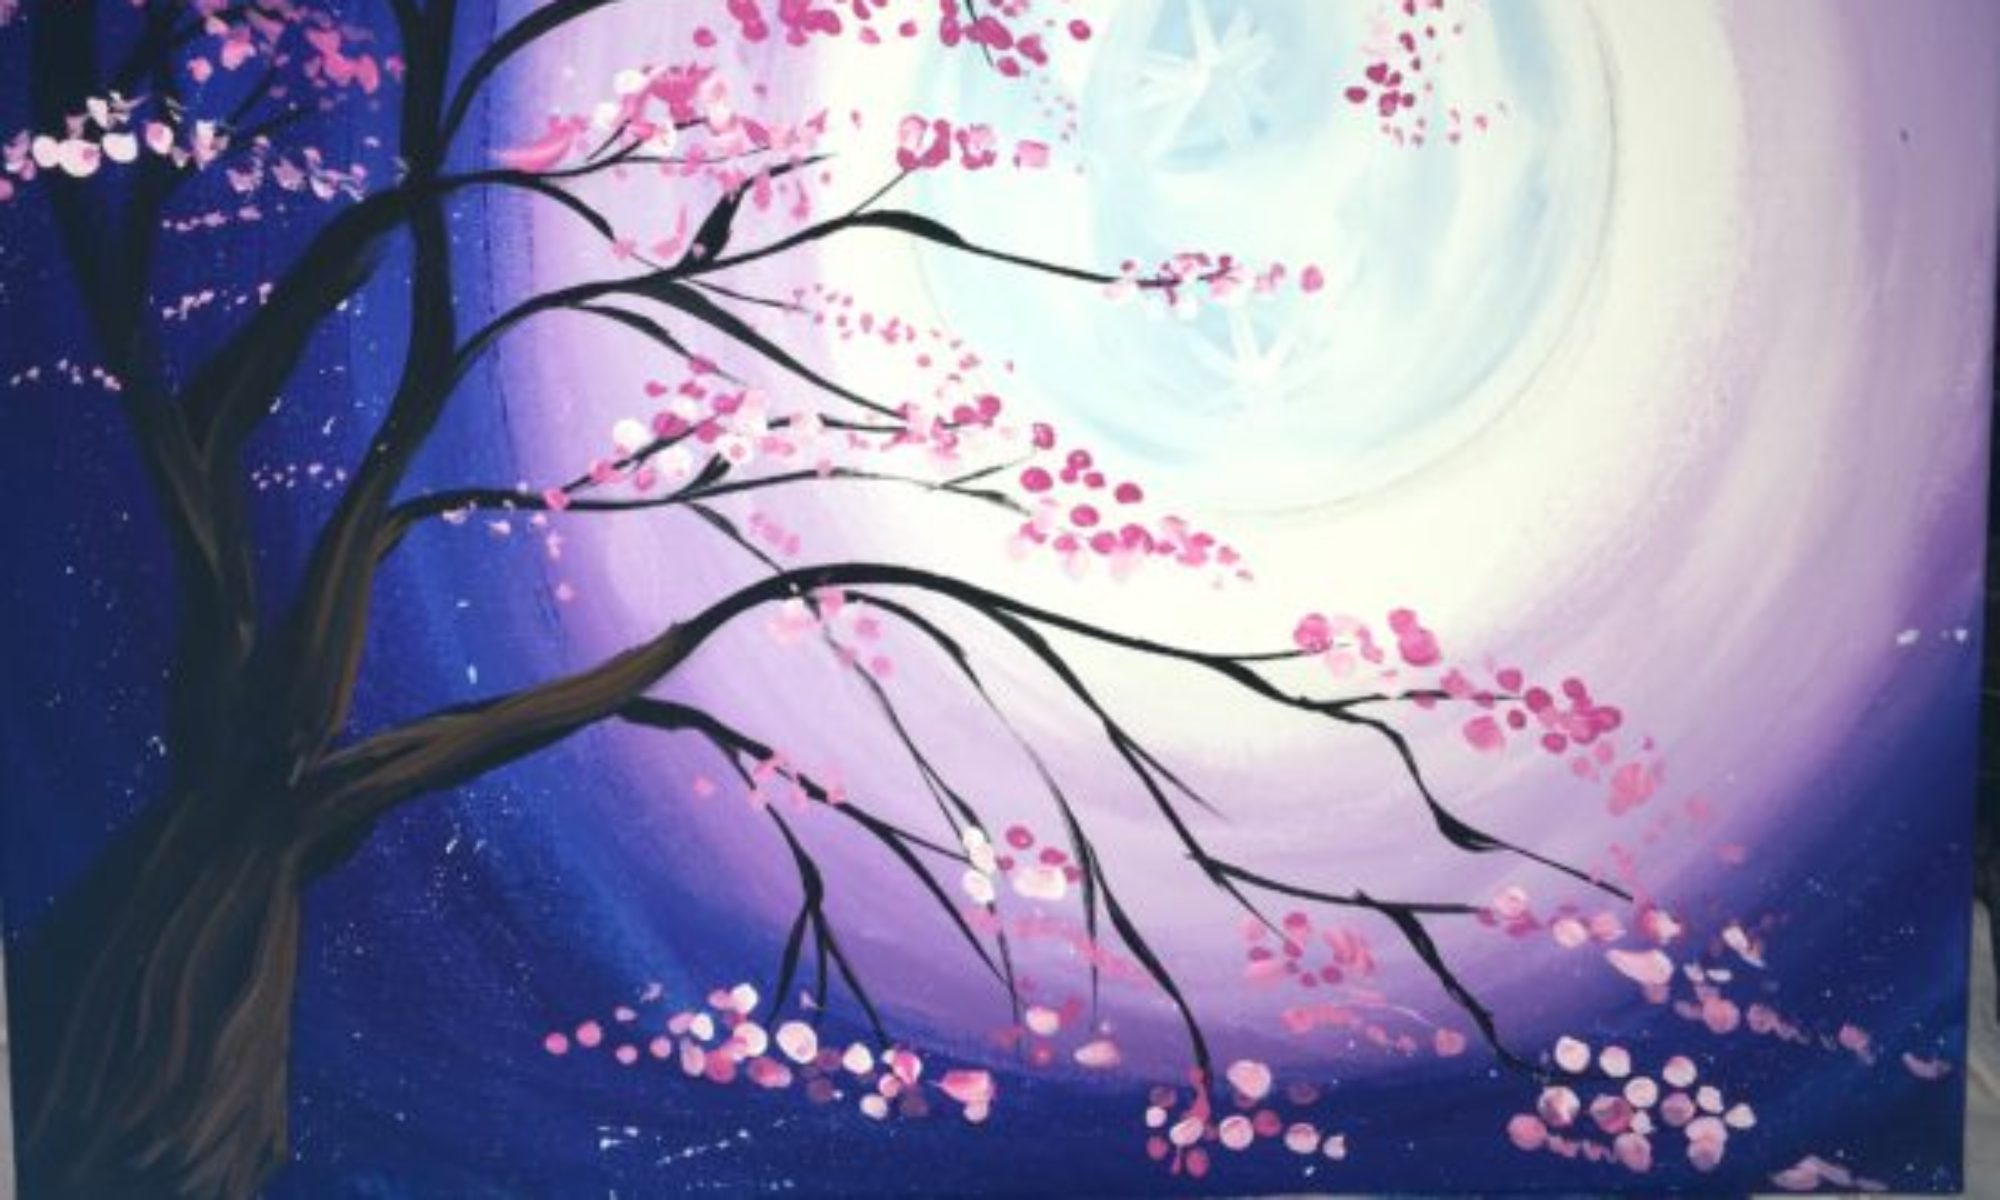 How To Paint A Cherry Blossom Tree With Moon - Step By